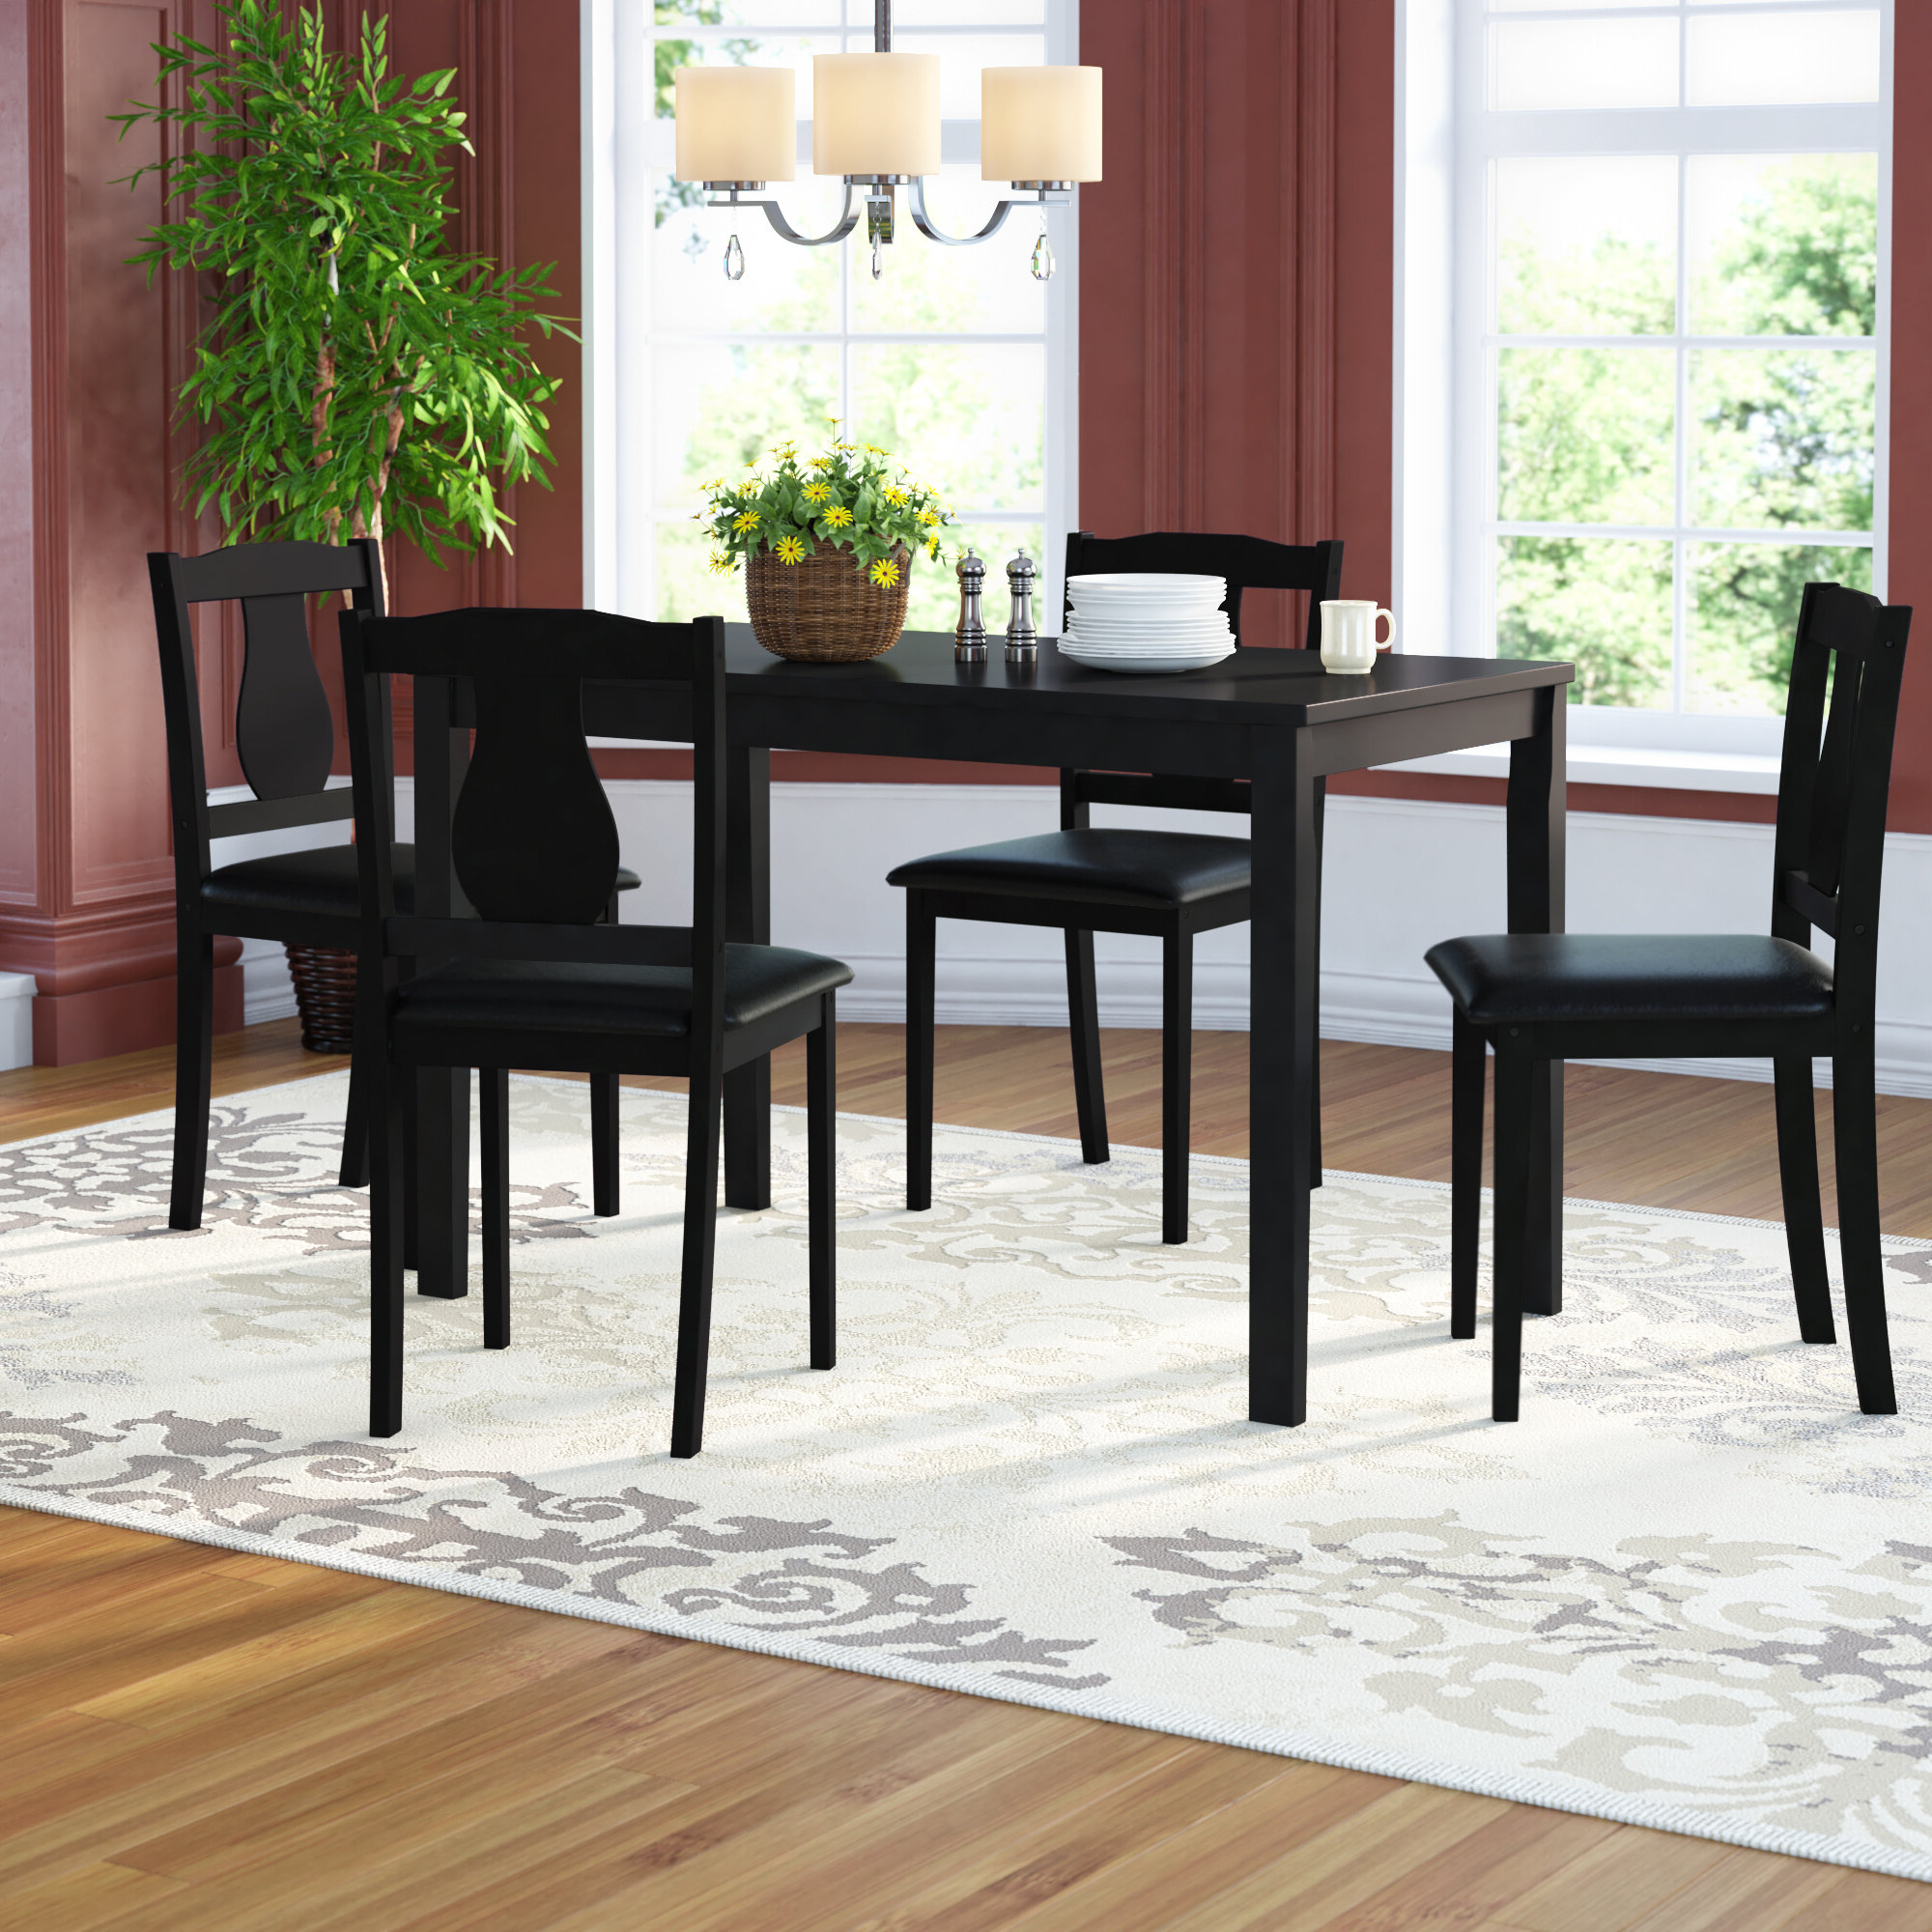 Wayfair Pertaining To Well Liked Maynard 5 Piece Dining Sets (View 21 of 25)